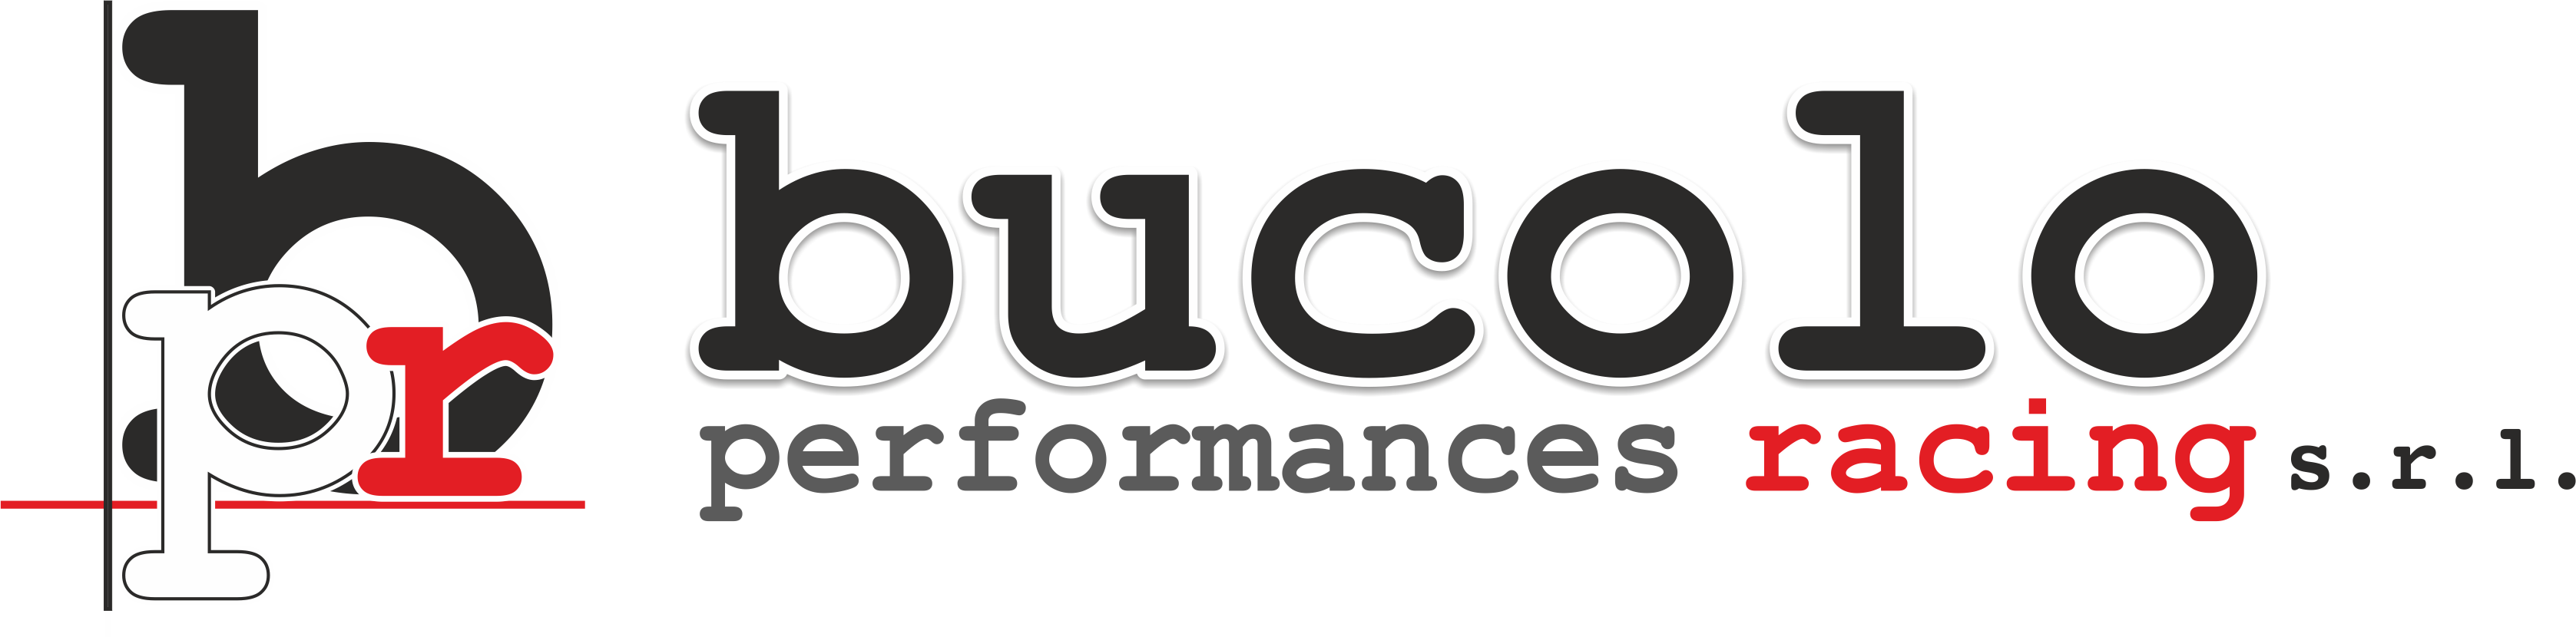 Bucolo Performances Racing